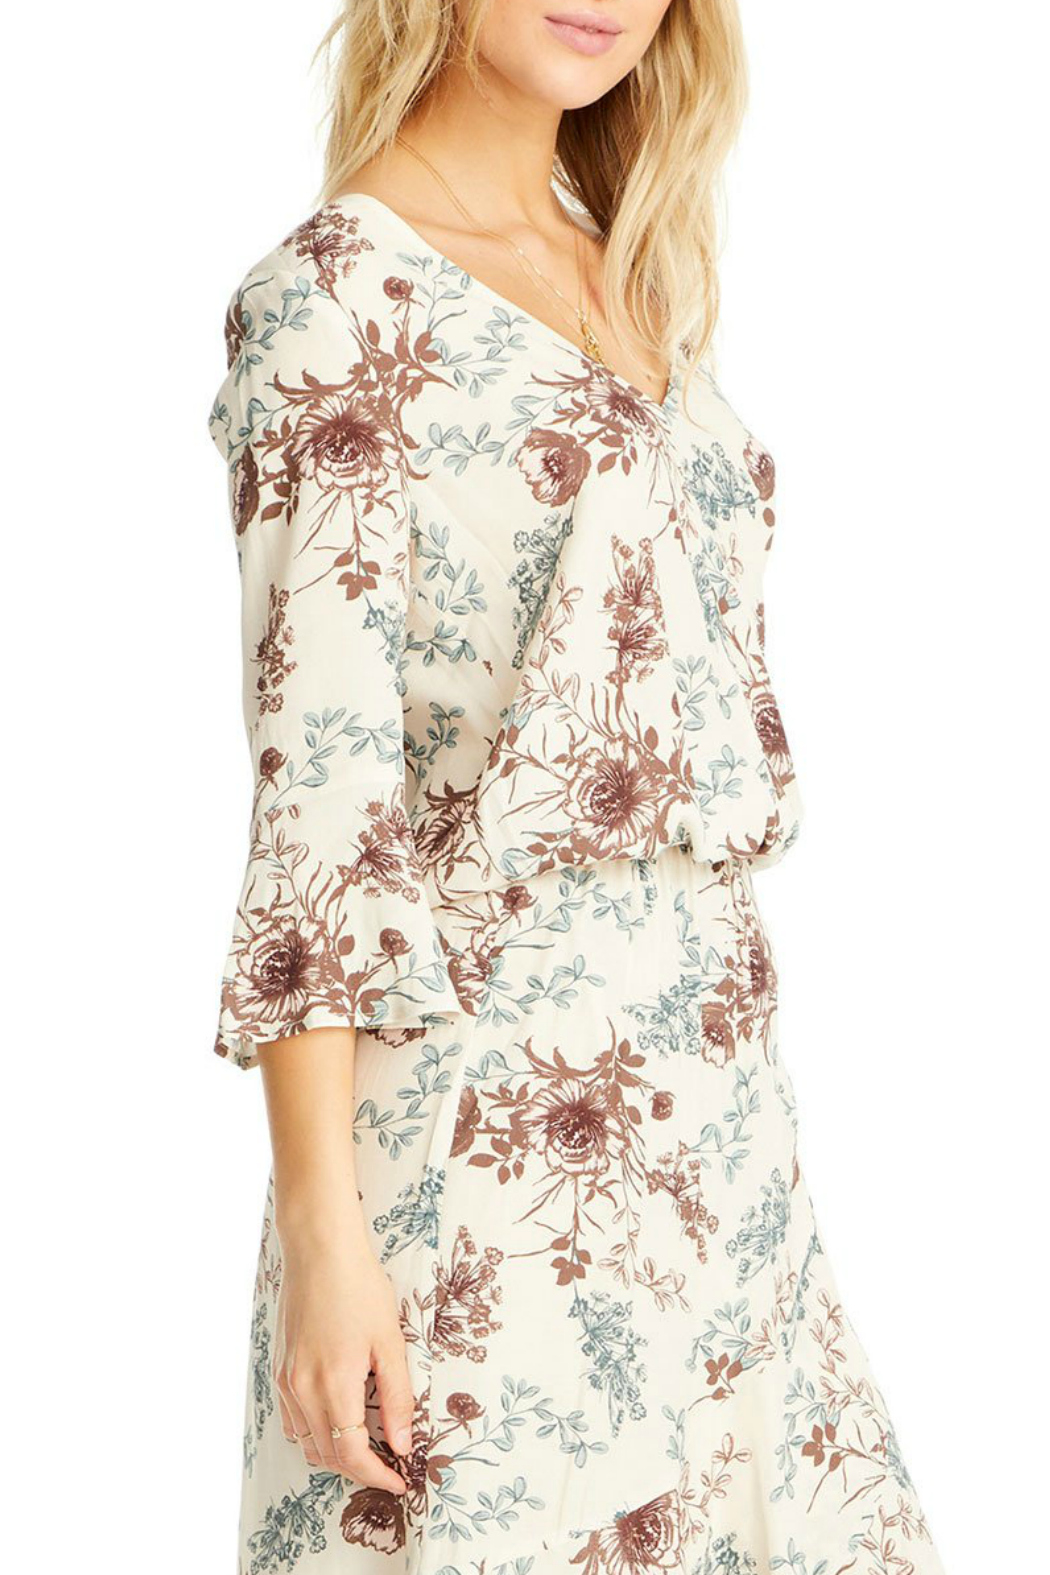 Saltwater Luxe Lyla 3/4 Bell Sleeve Blouse - Front Full Image